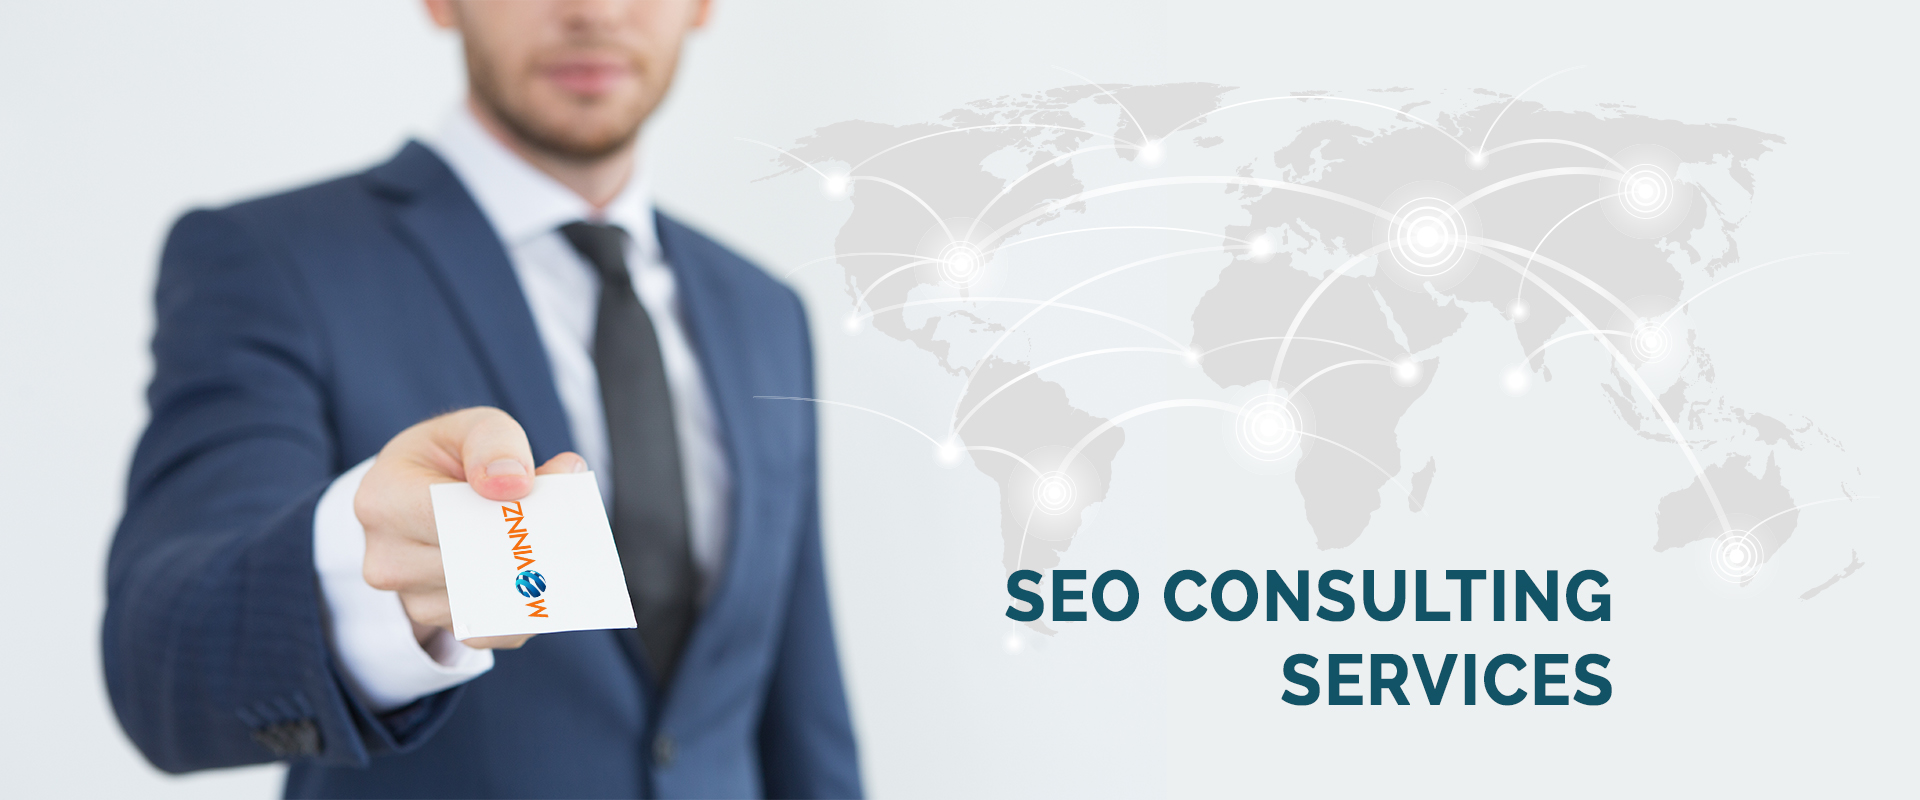 Best SEO consulting services in Mumbai